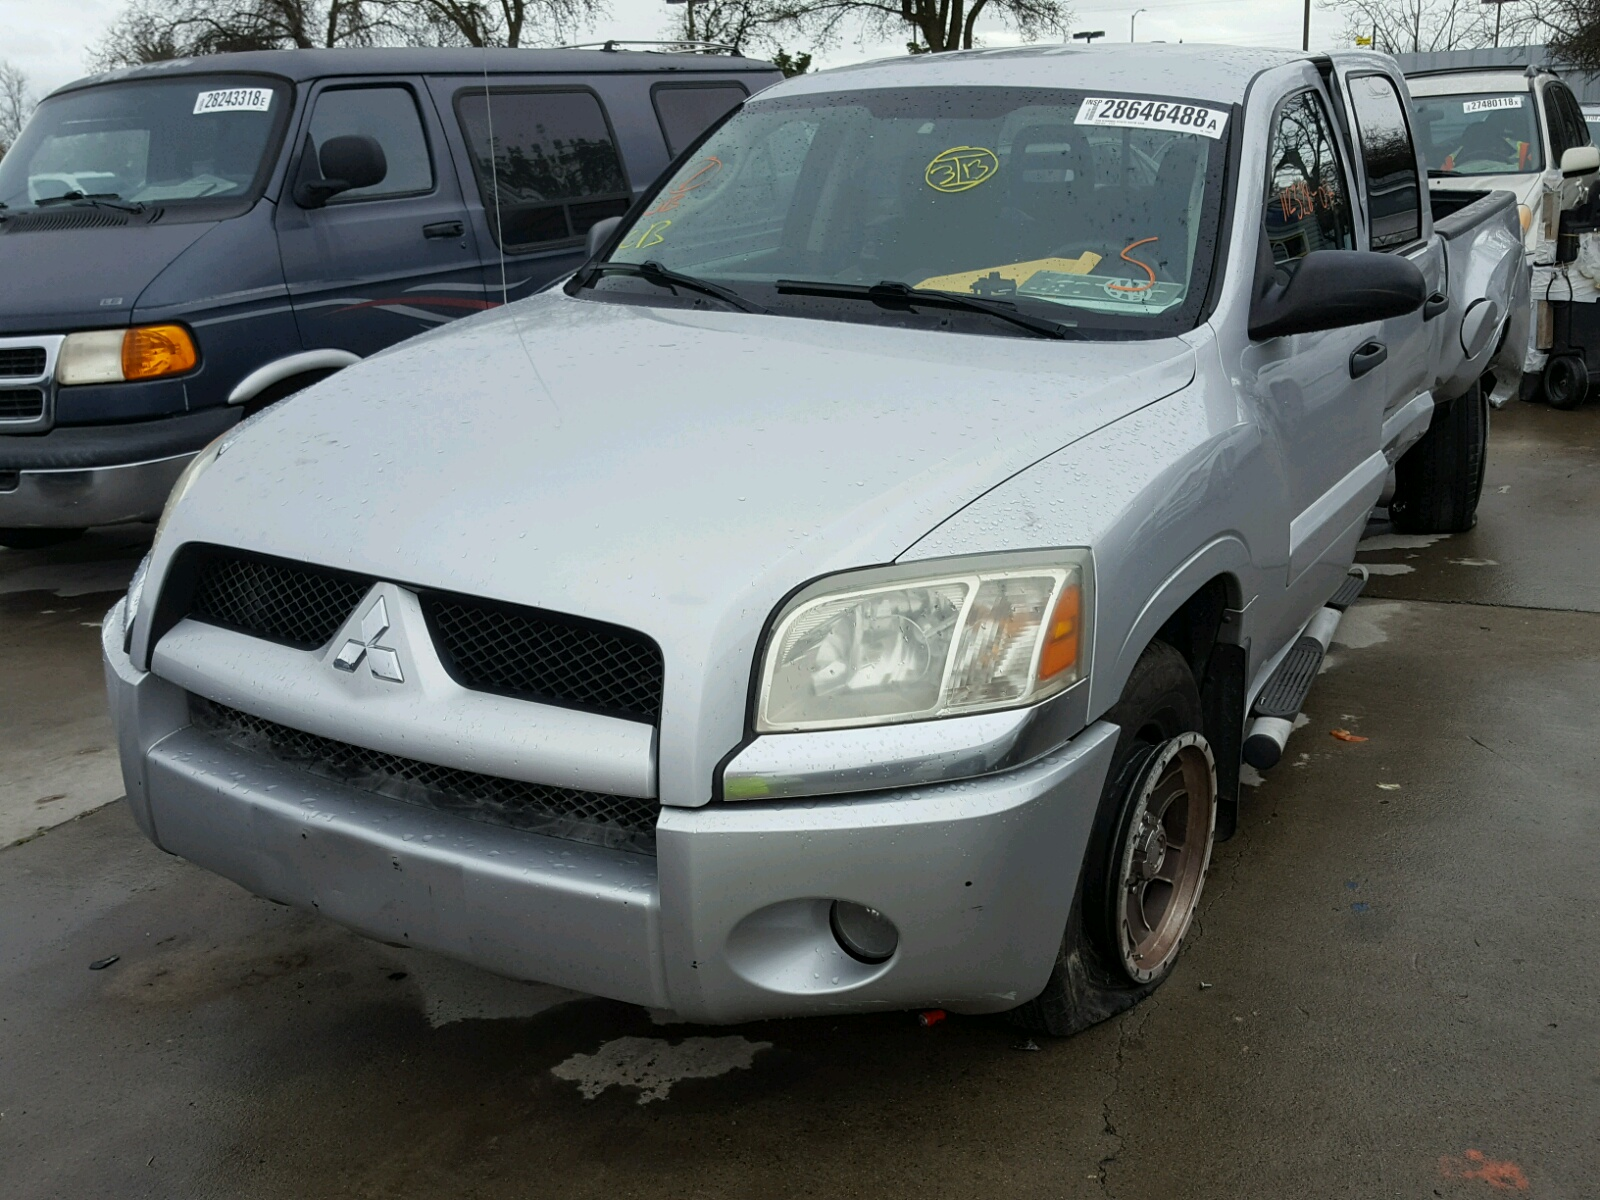 view cert salvage angle copart sale lot raider on for auctions mitsubishi dur en hammond title red carfinder auto online of in